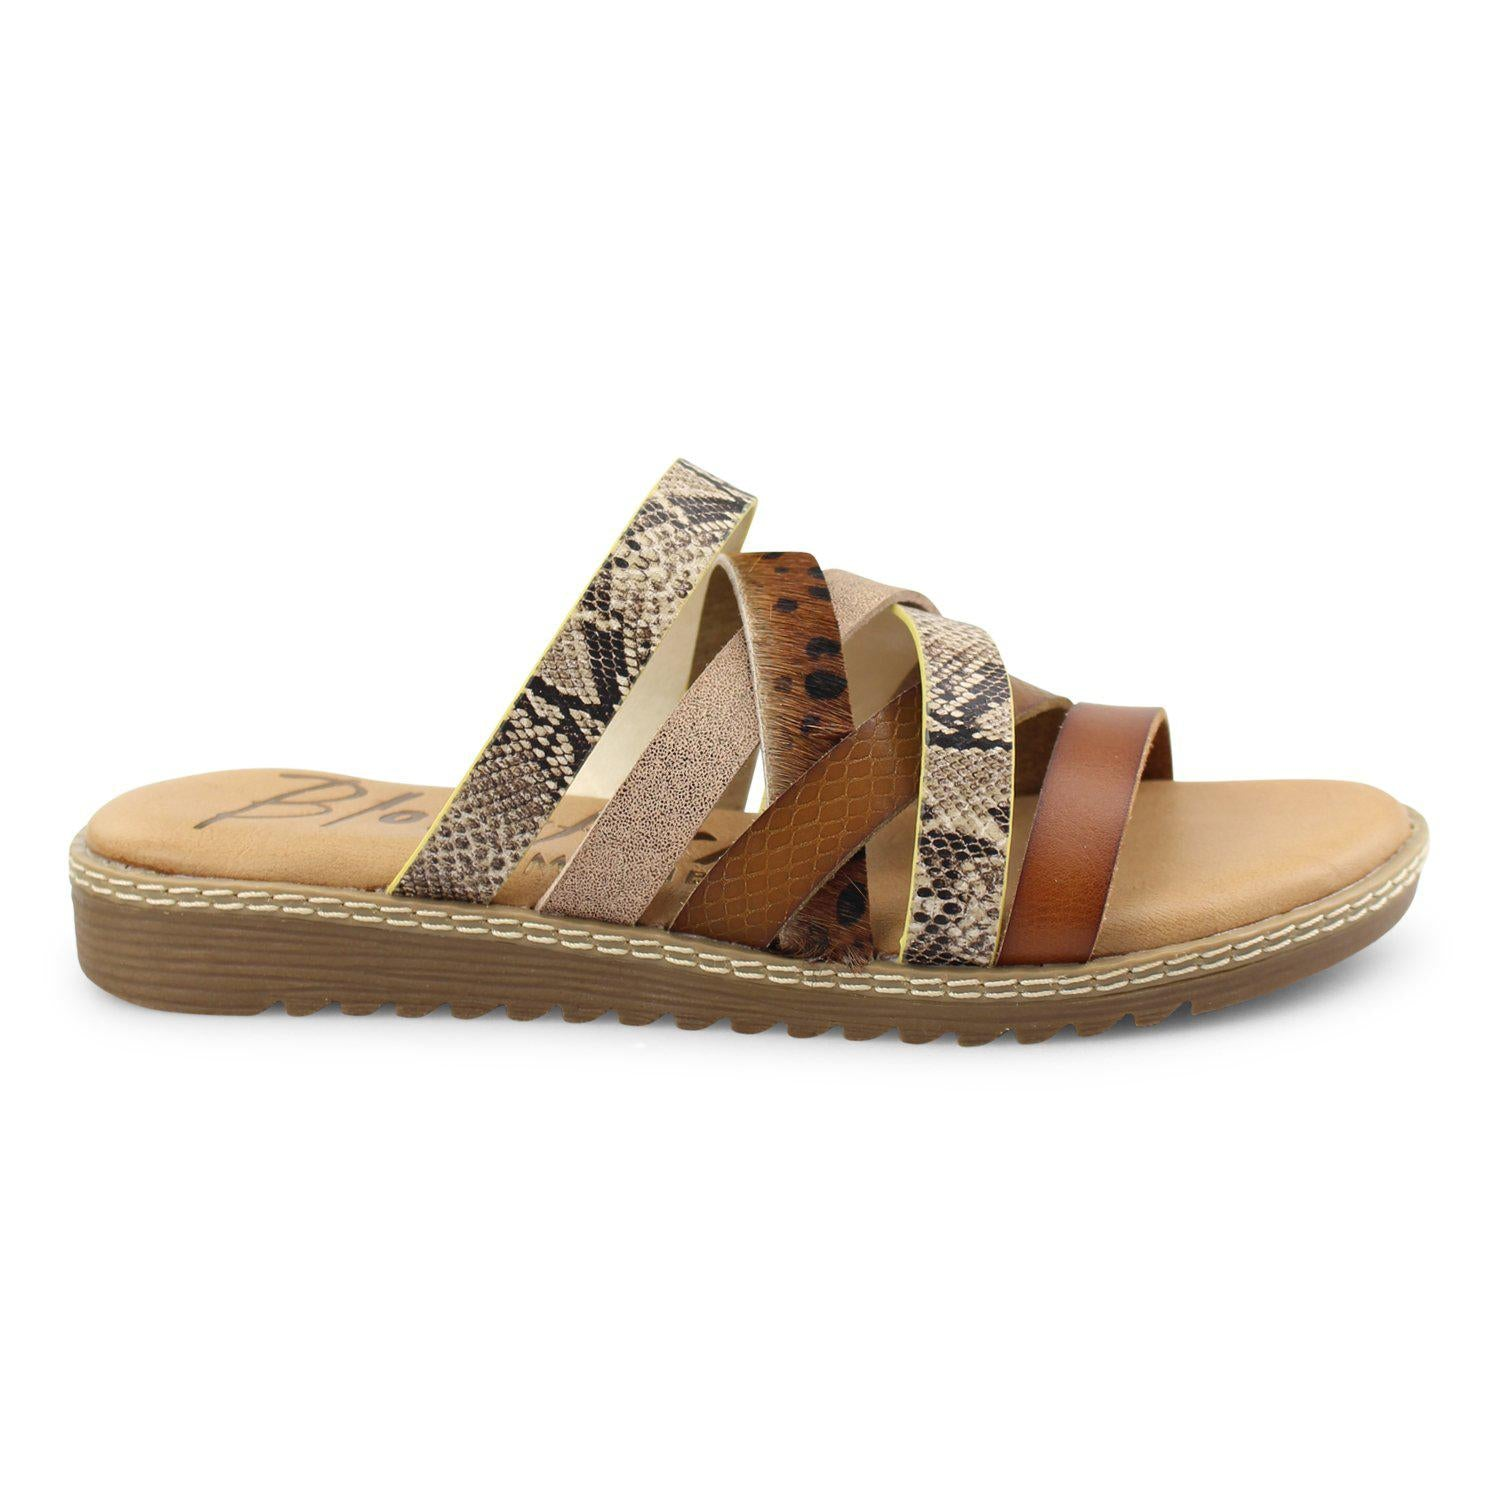 Blowfish Orrah Sandal - Scotch/Brown Leopard